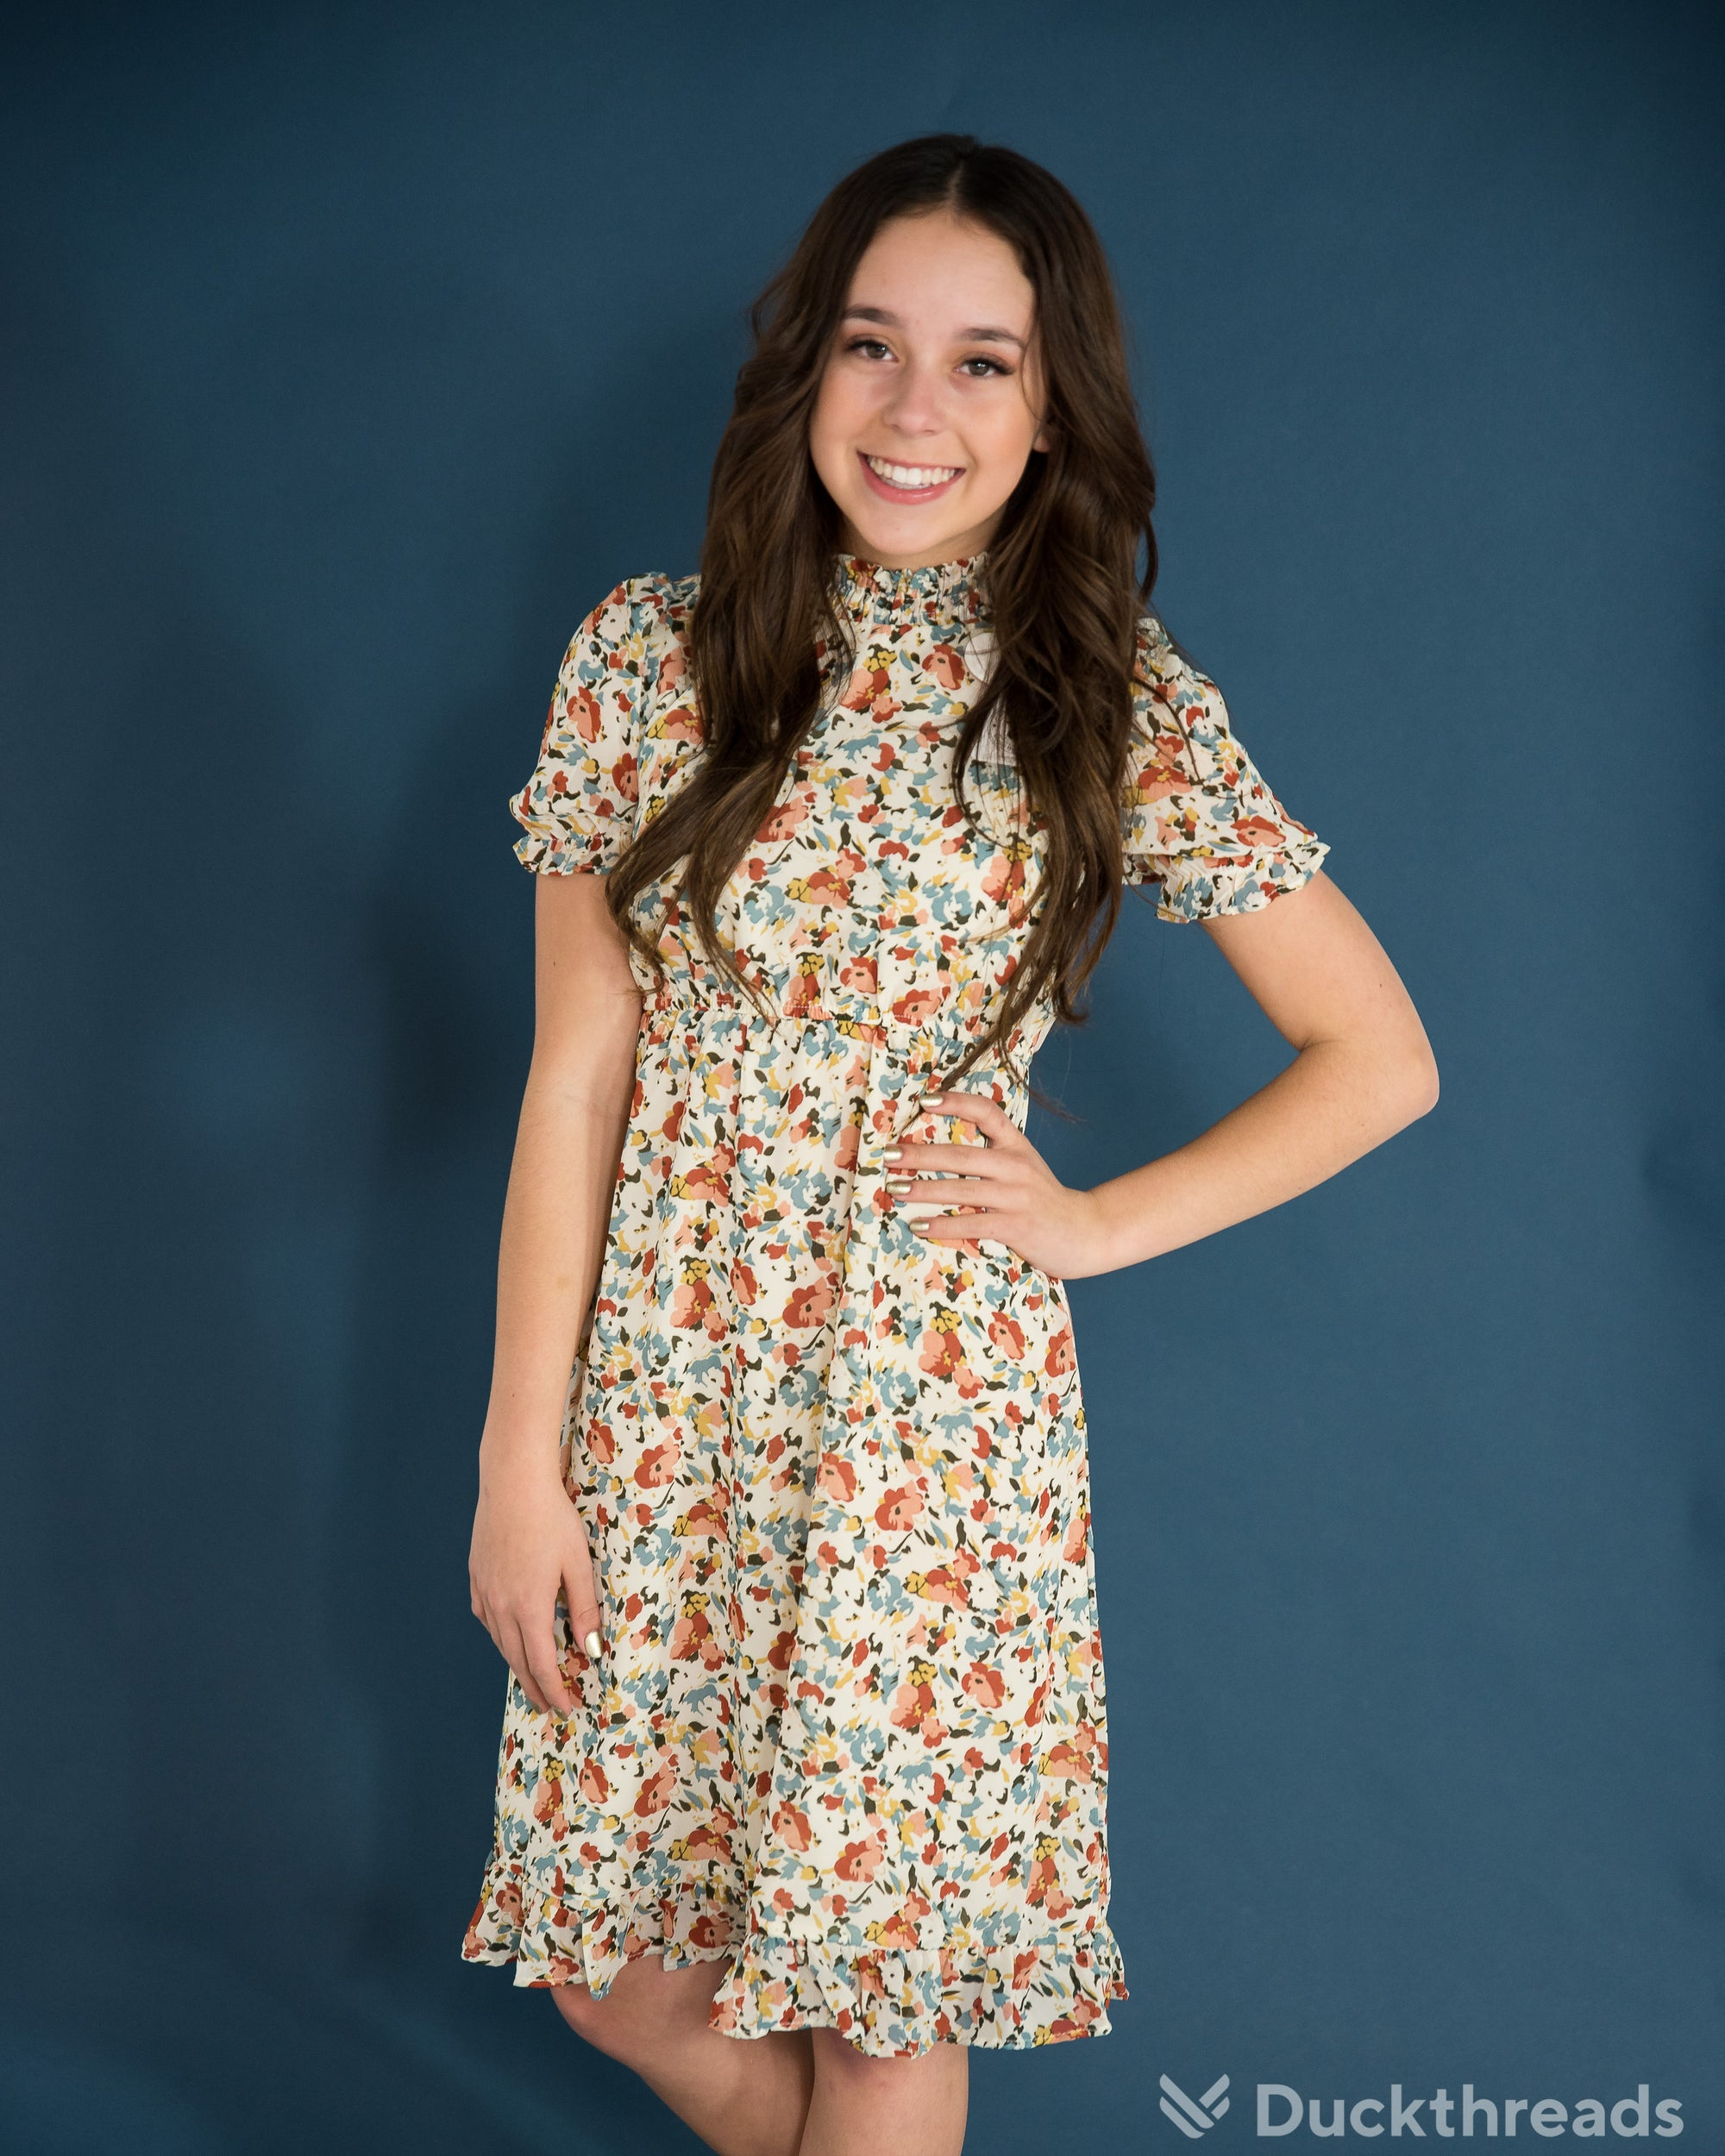 Girls Floral Print Midi Dress with Mock Turtleneck - Duckthreads